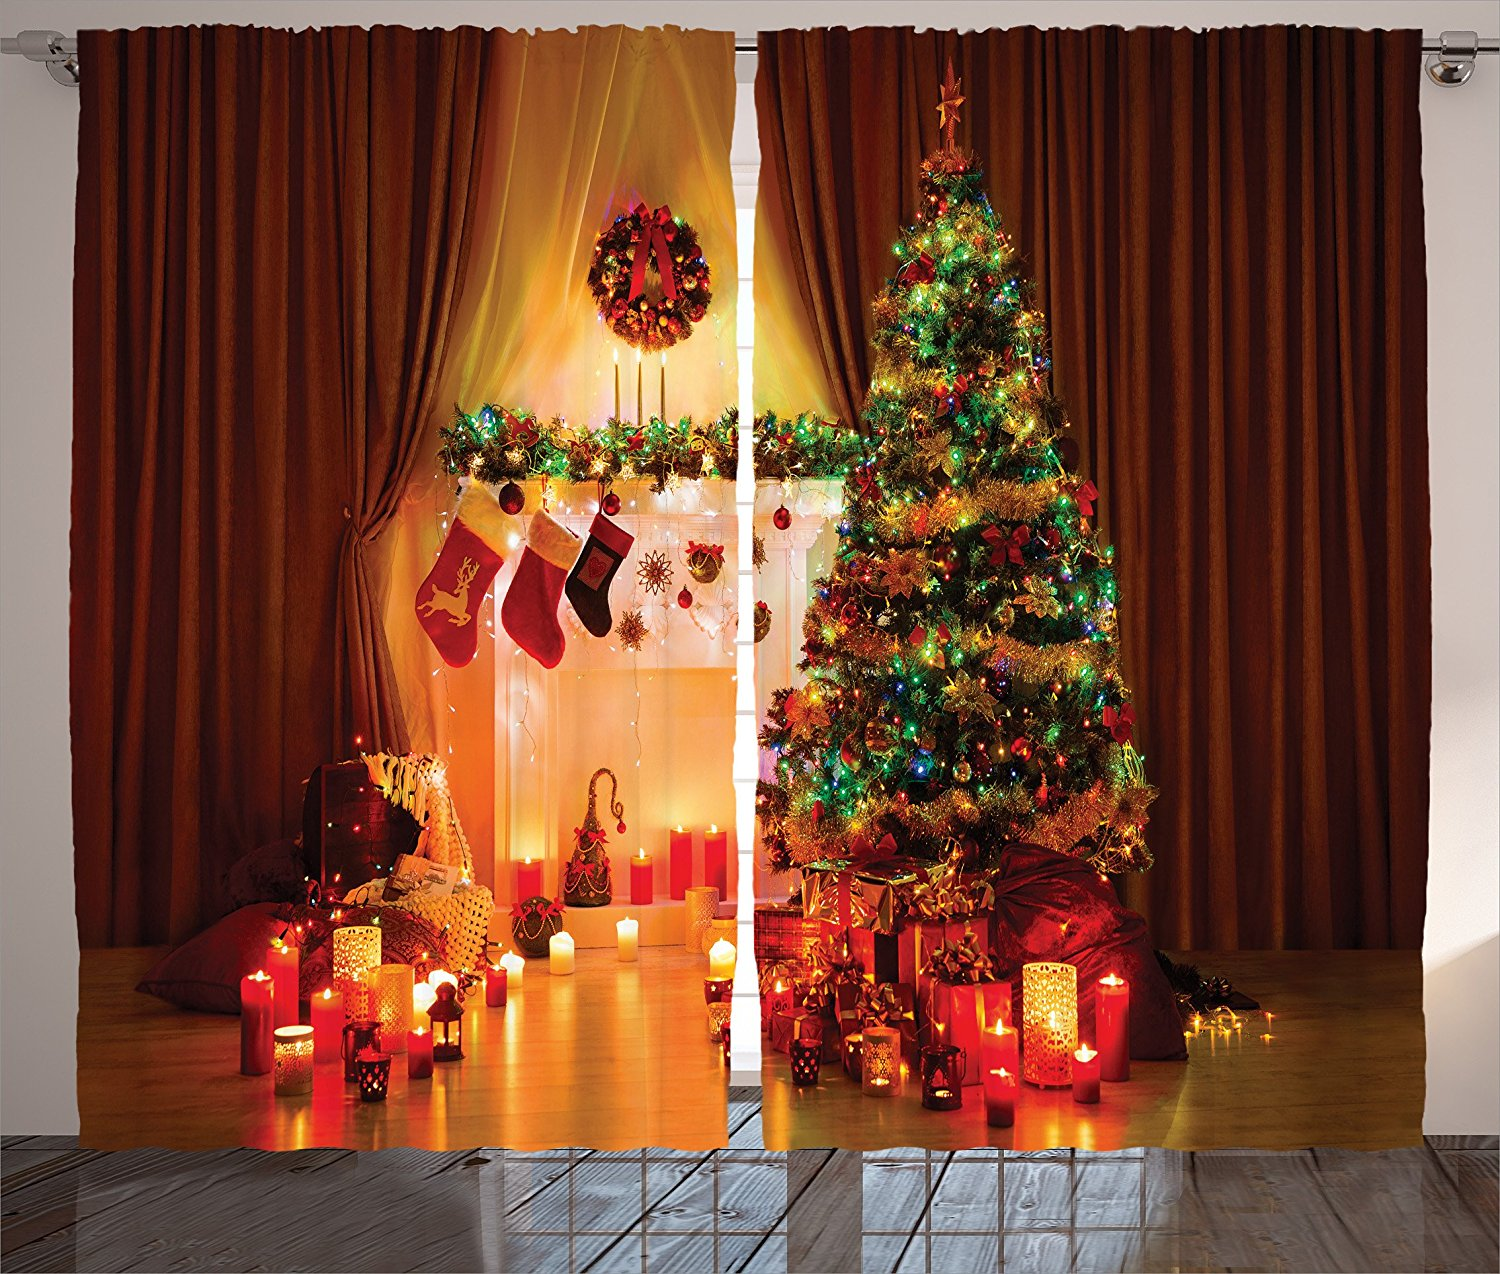 Deck the halls and your bathrooms this season with Christmas shower curtains. These fun, festive accessories will add a cheerful touch to the bathroom and help you celebrate the season in style. From colorful Santa Claus designs to romping reindeer, Wayfair has the holiday shower curtains .